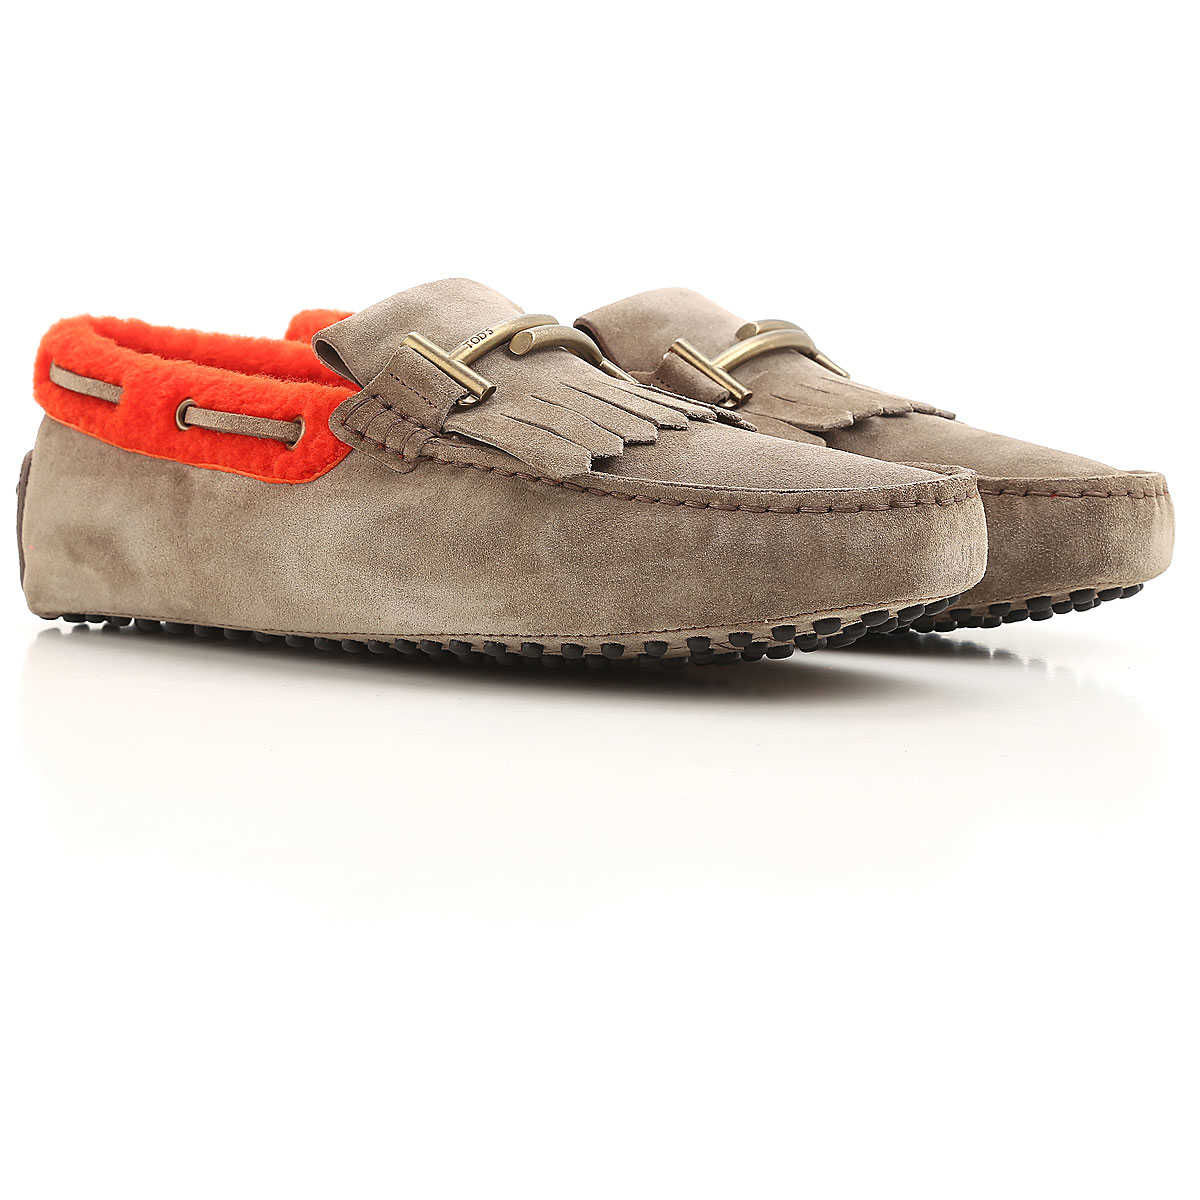 Tods Loafers for Men Tortoise USA - GOOFASH